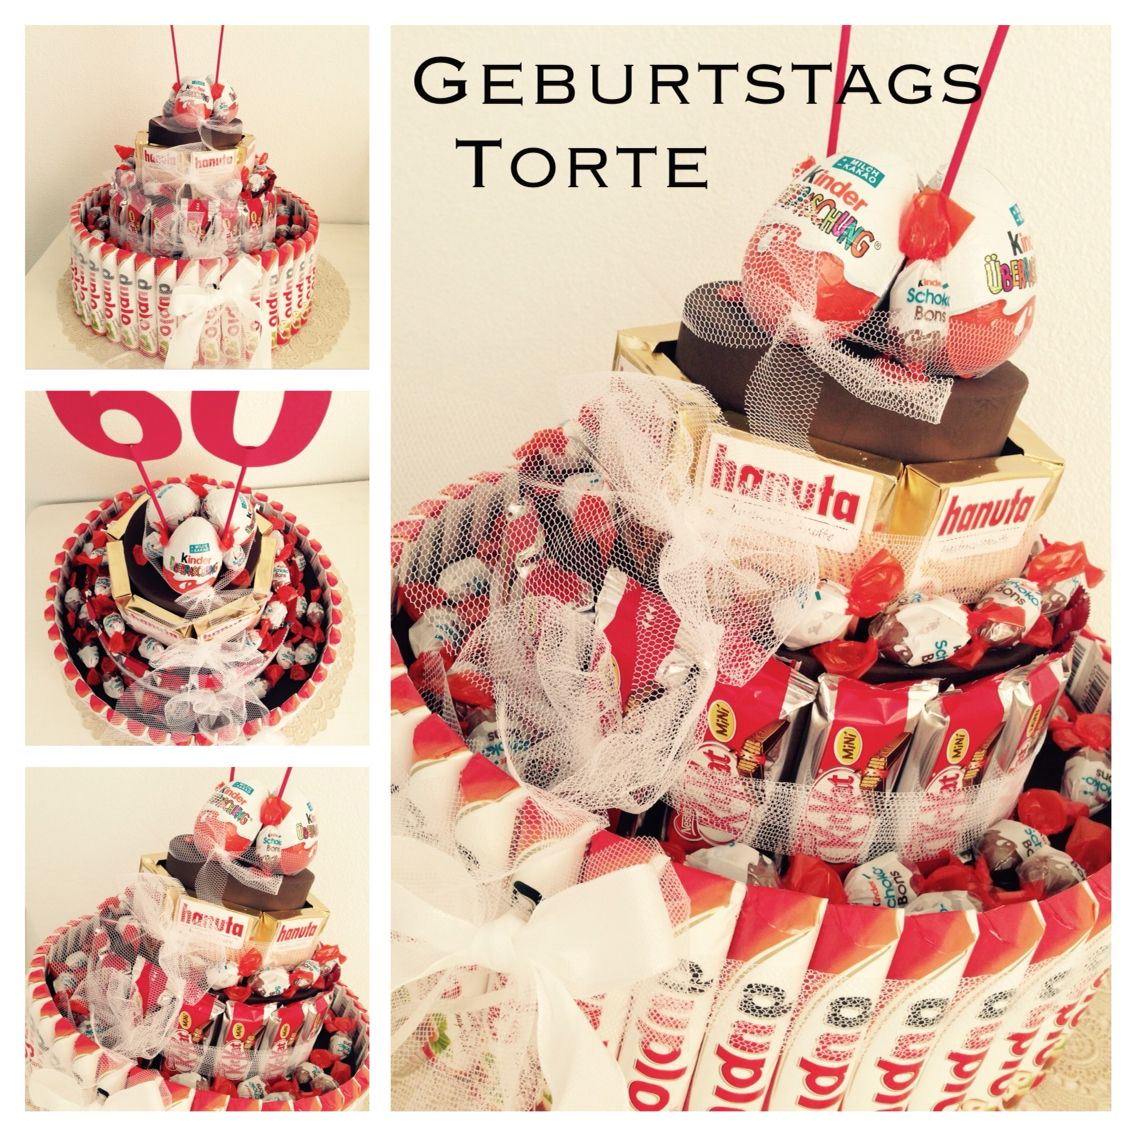 s igkeiten torte mit milka und kinderschokolade geschenke pinterest gift birthdays and. Black Bedroom Furniture Sets. Home Design Ideas